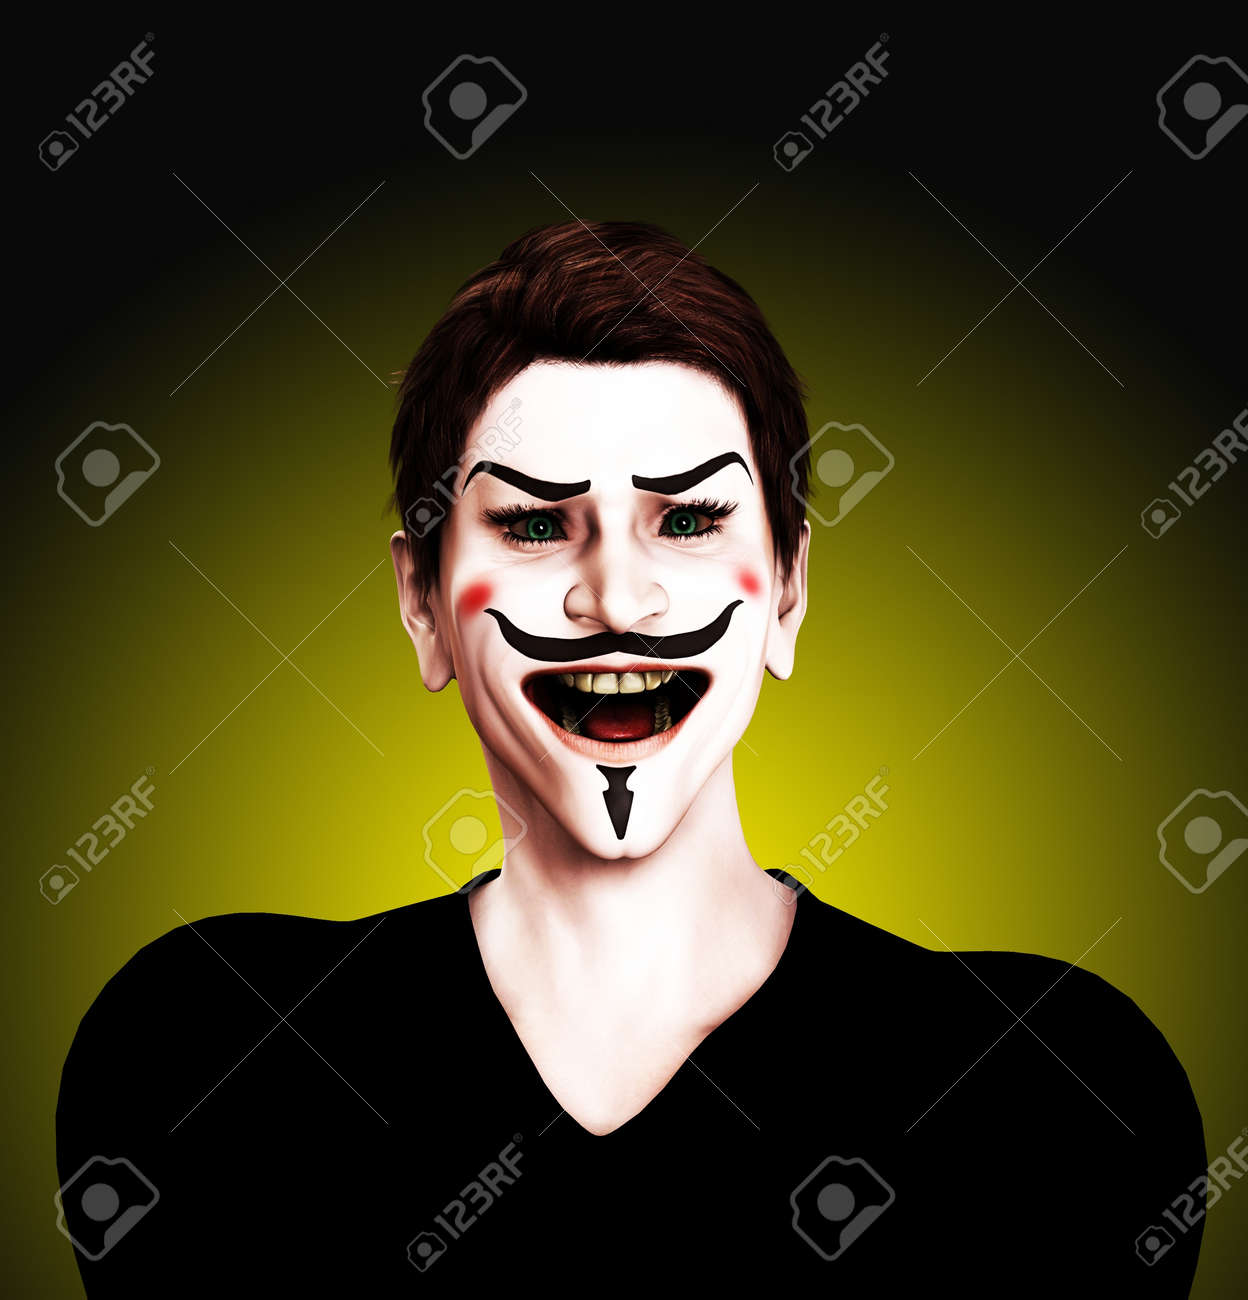 Close up view of an insane Guy Fawkes. Stock Photo - 10569515